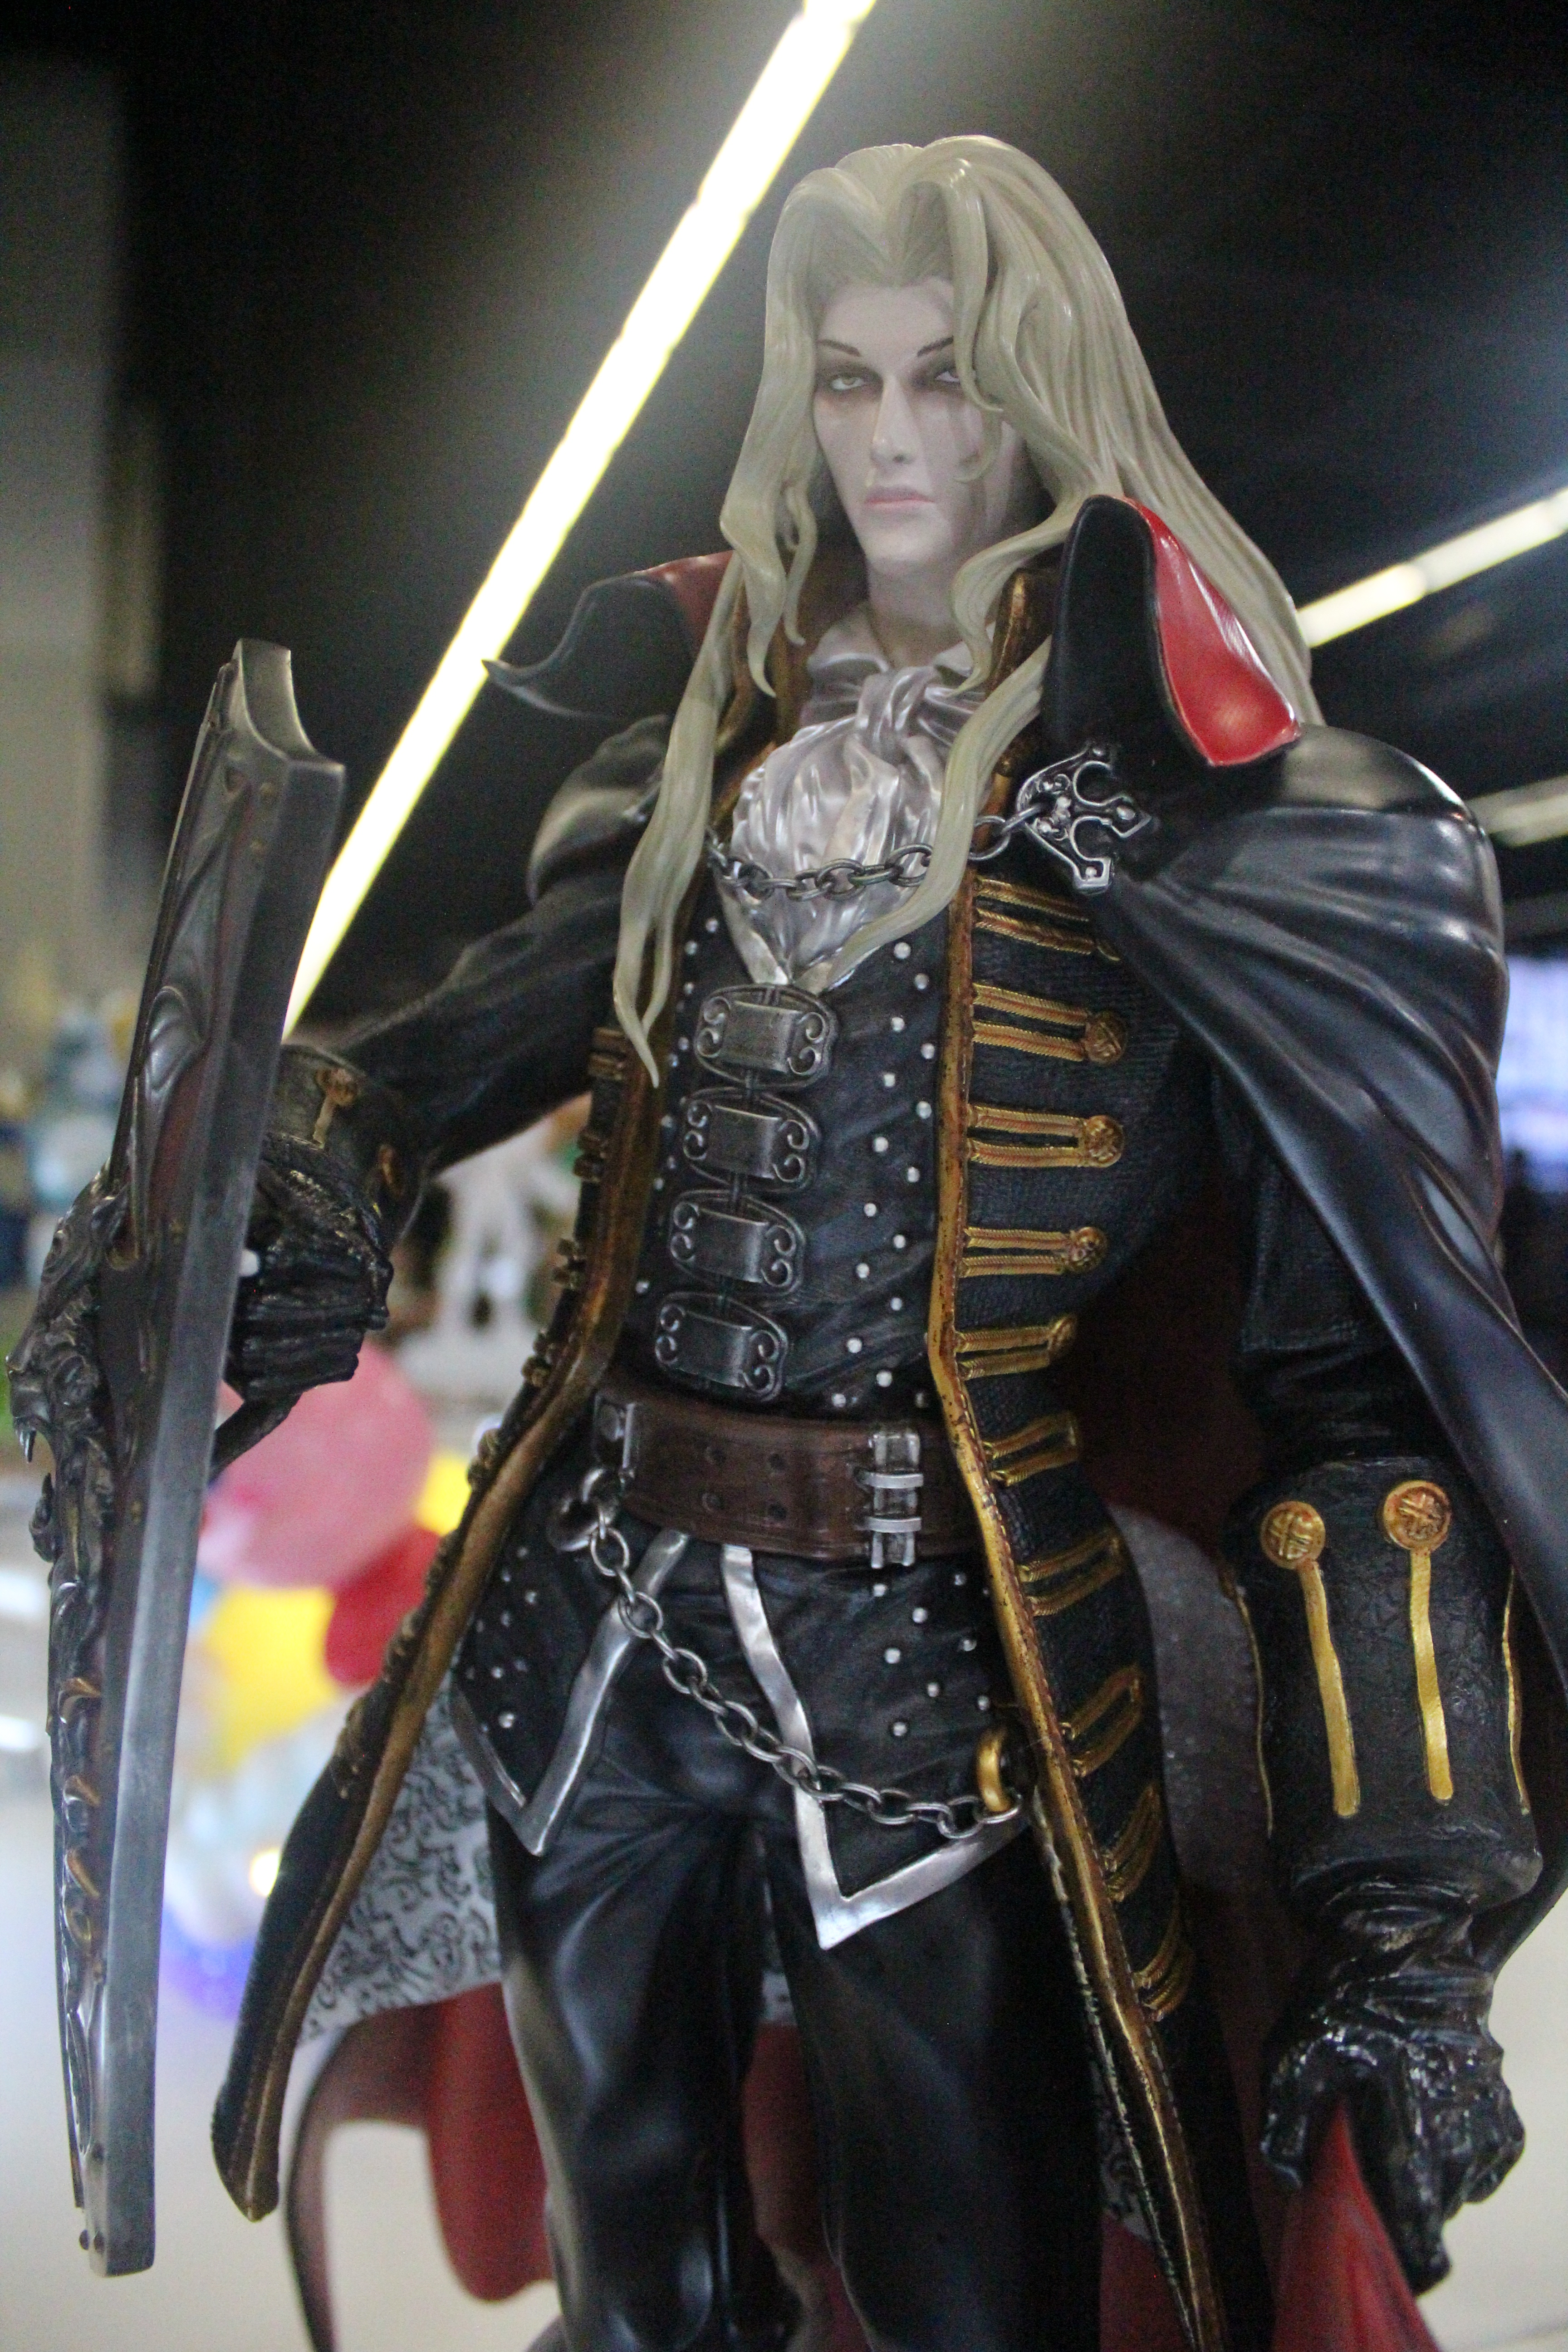 Castlevania: Symphony of the Night – Alucard (Exclusive)